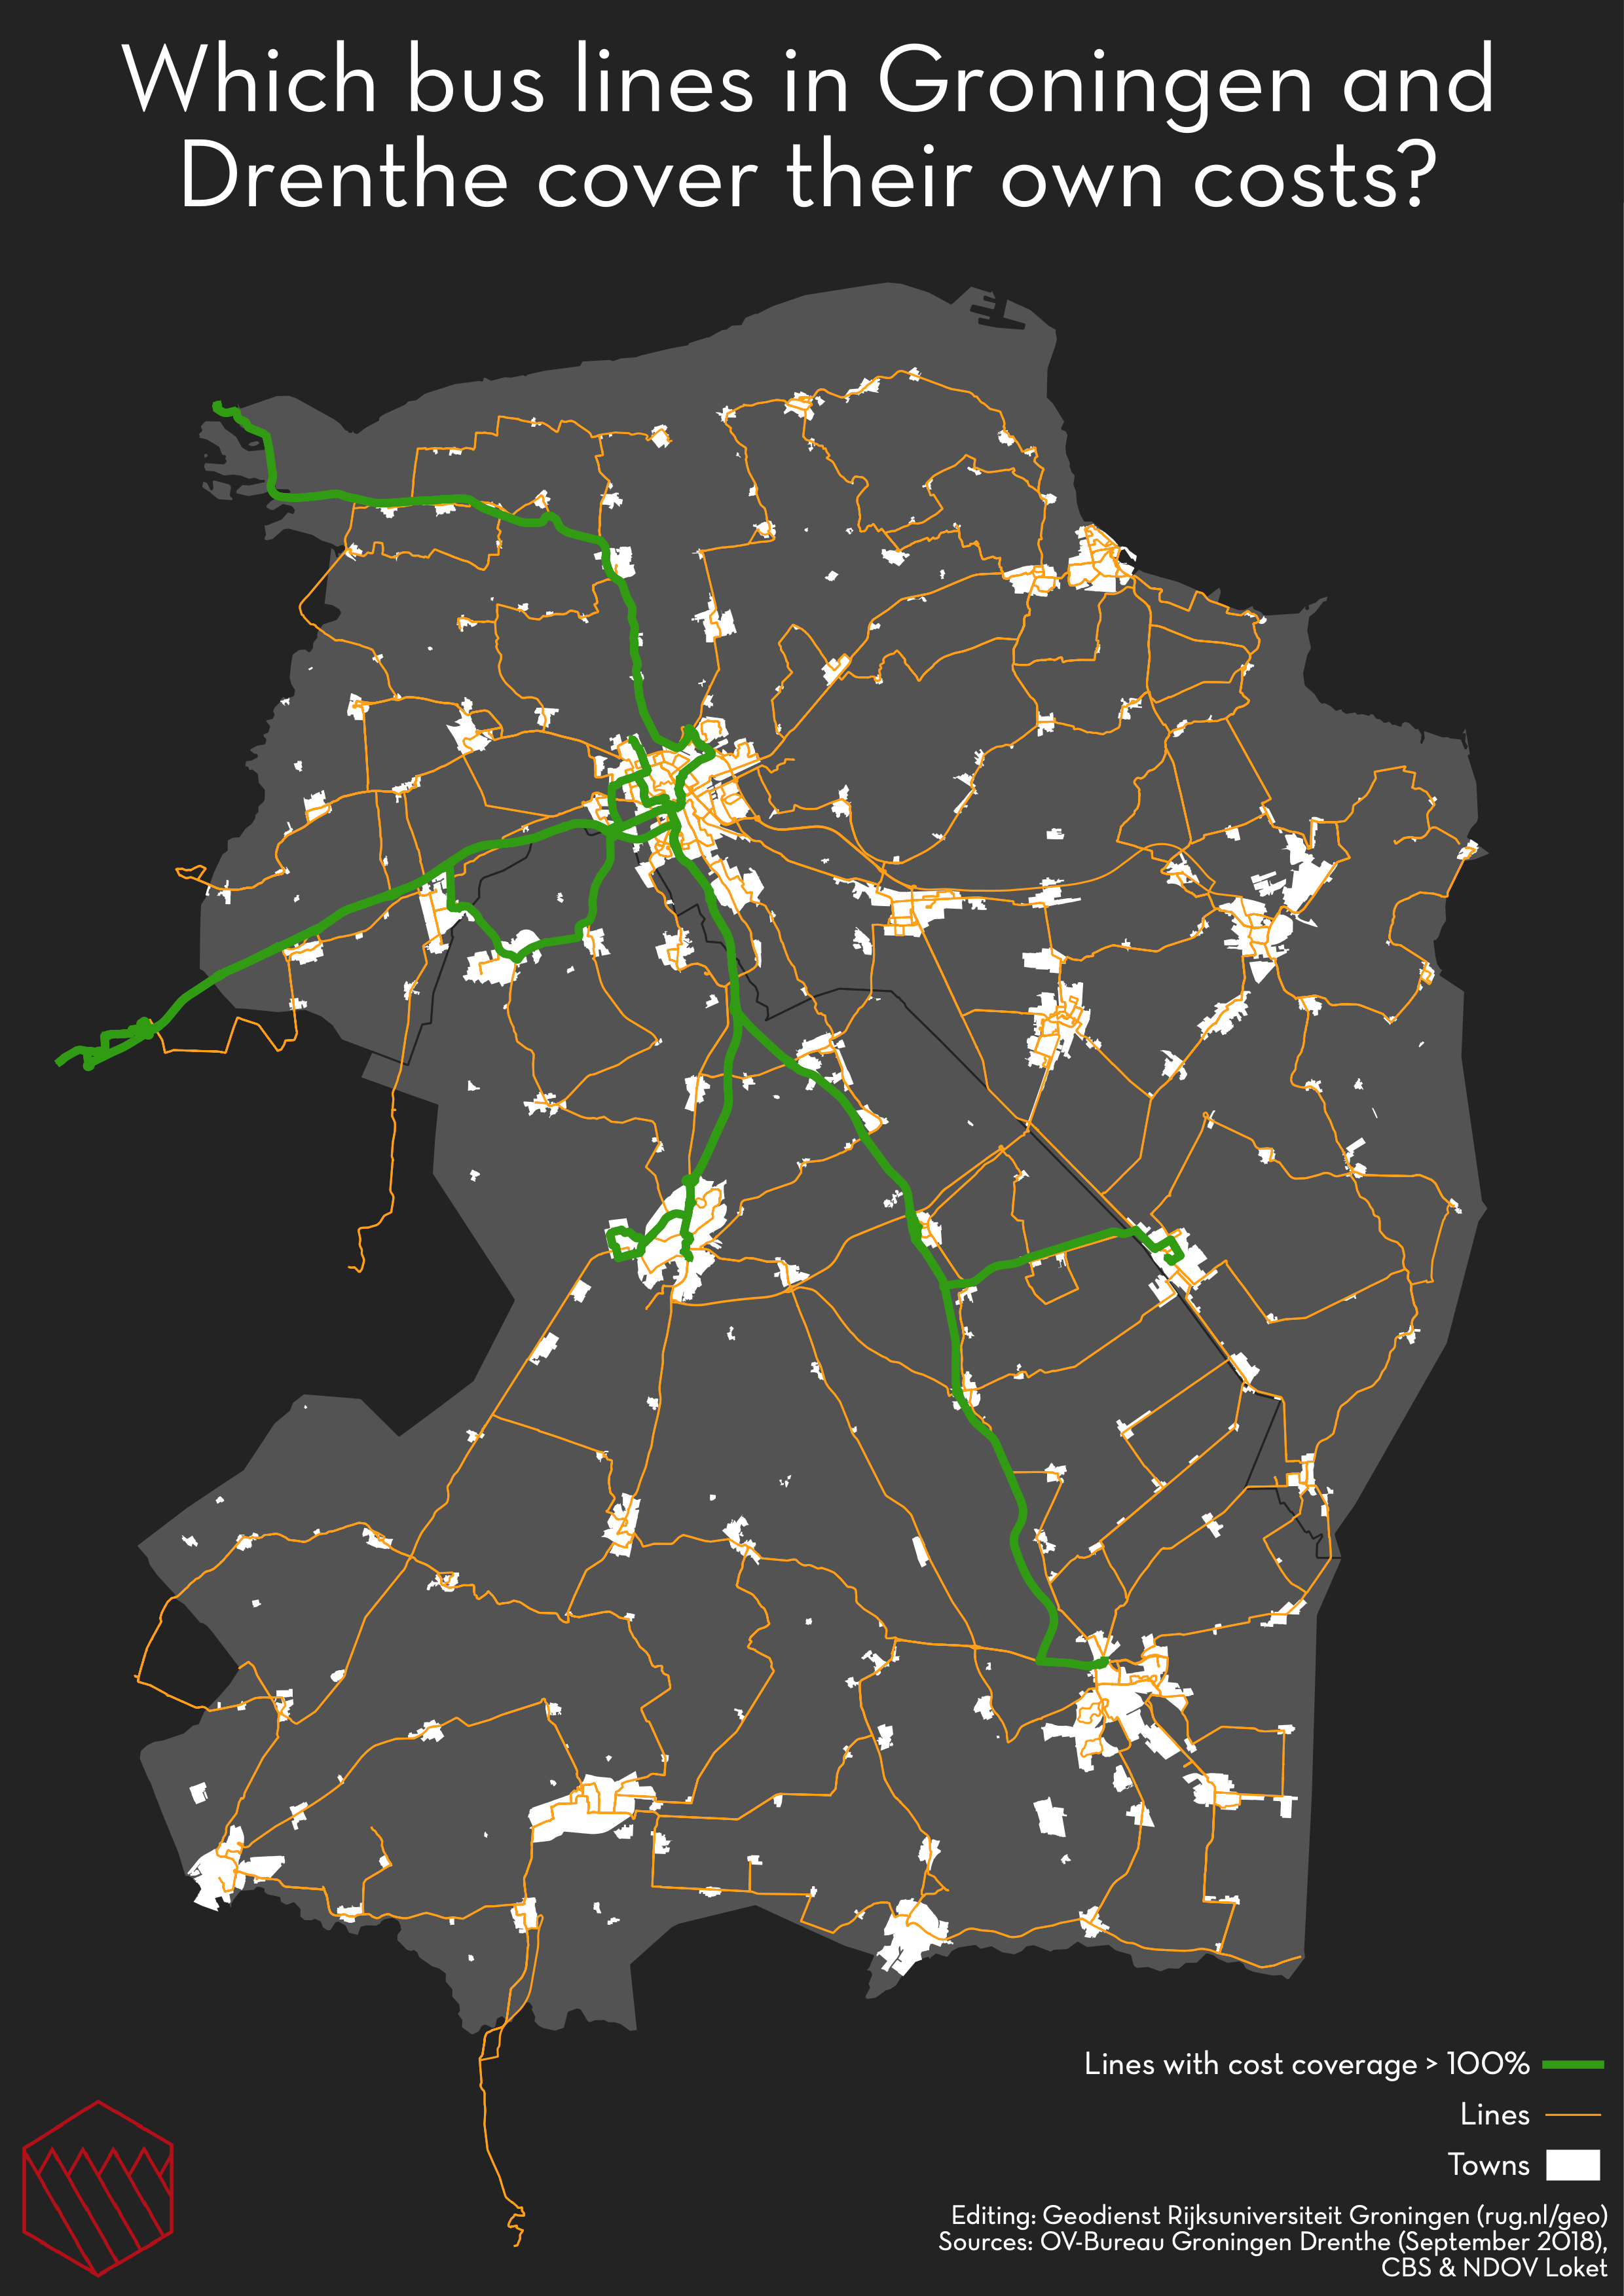 Bus Cost Coverage For The Provinces Of Groningen And Drenthe In The Netherlands Oc Groningen The Province Netherlands